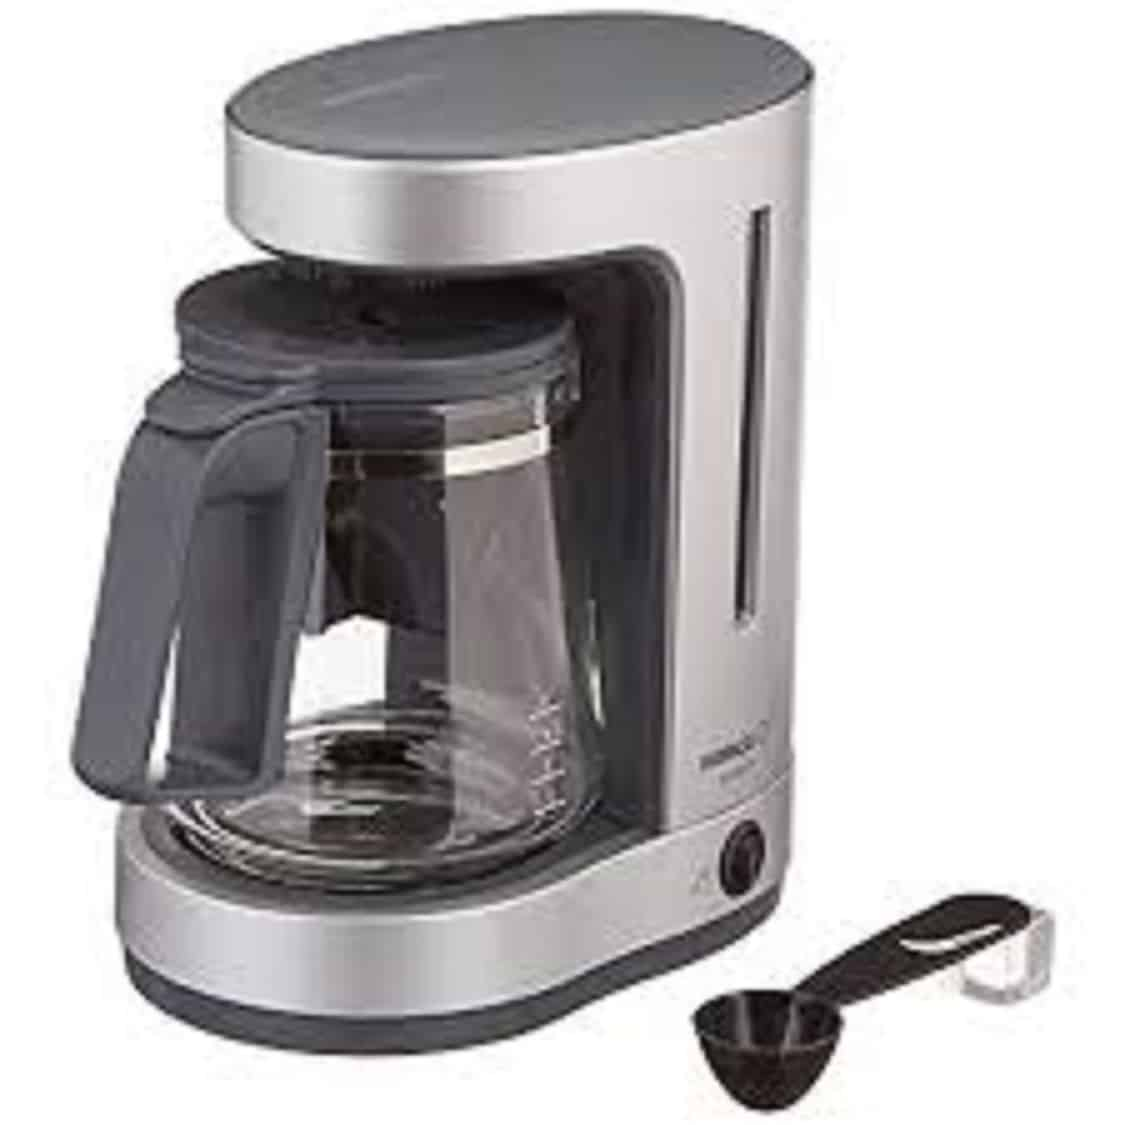 best small coffee maker reviews